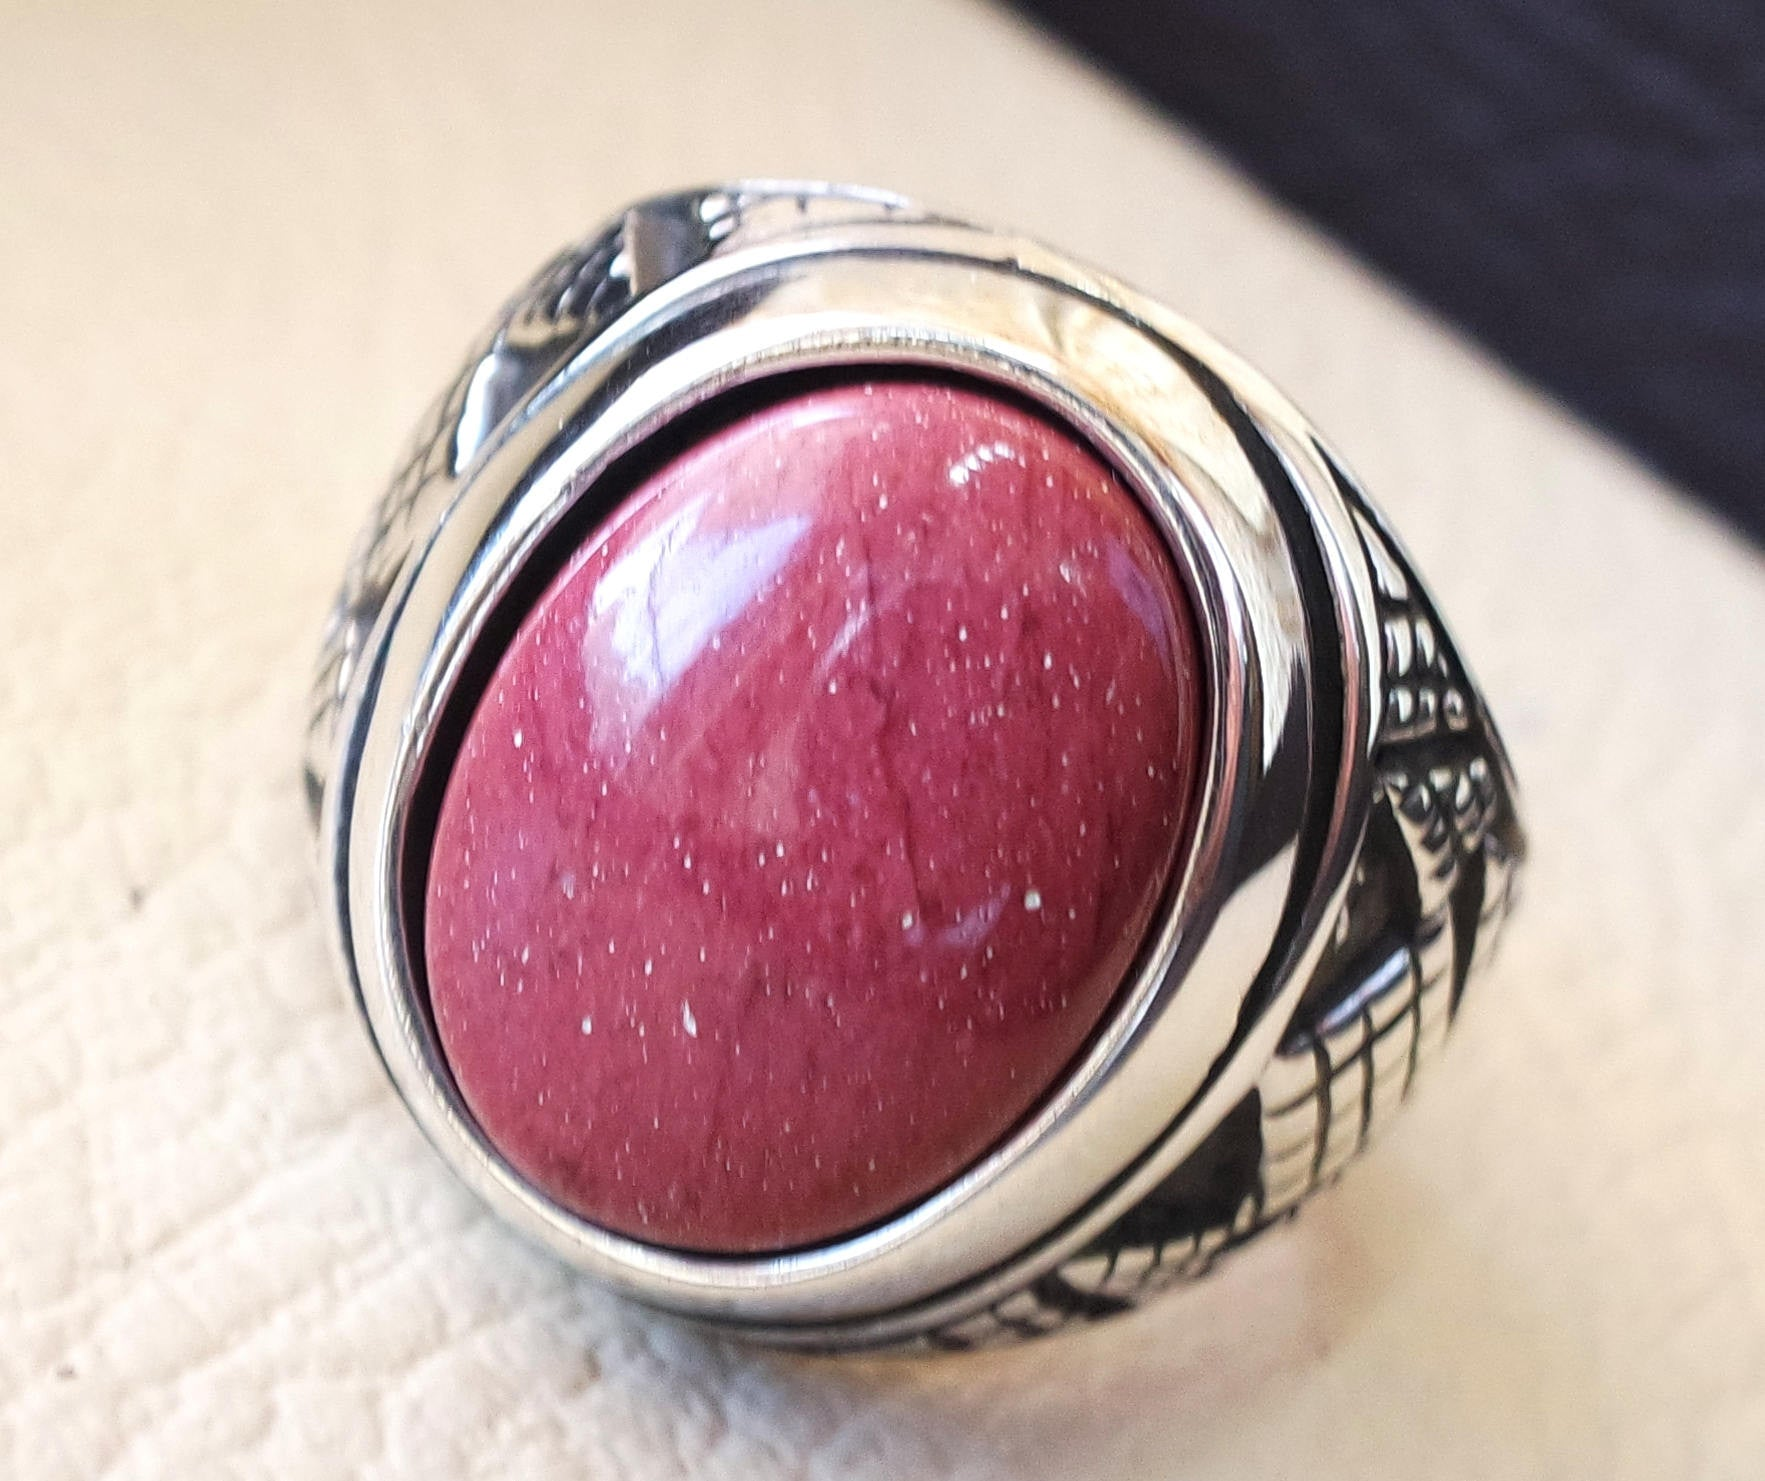 red rose mookaite jasper aqeeq natural stone sterling silver 925 heavy men ring vintage arabic ottoman style all sizes fast shipping